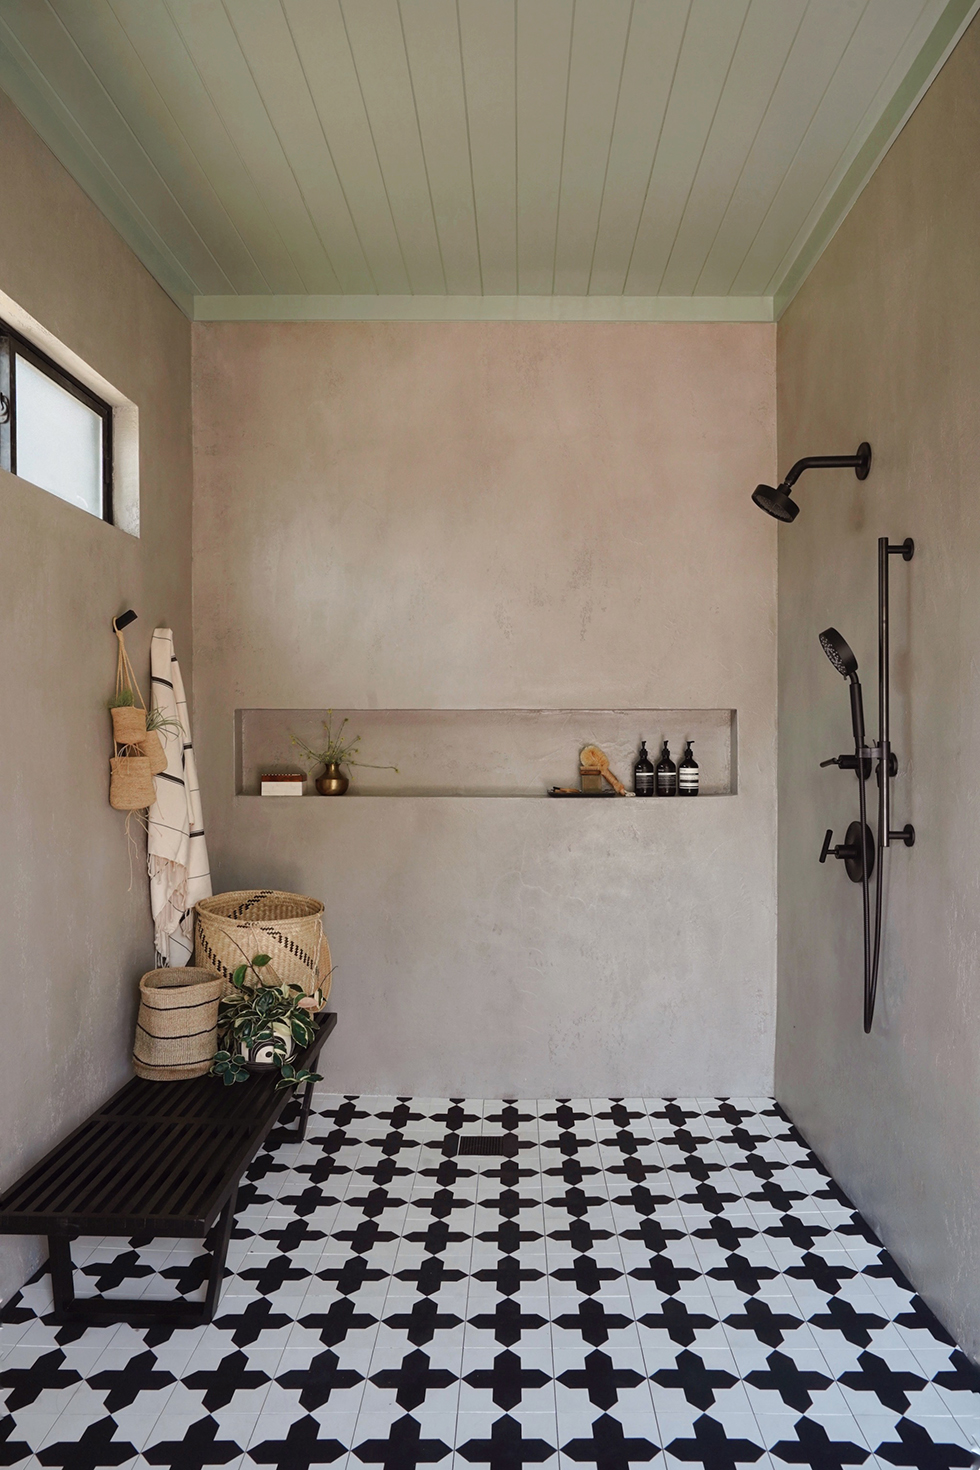 pool house shower with behr color trends 2021 palette on country farmhouse exterior paint colors 2021 id=19538